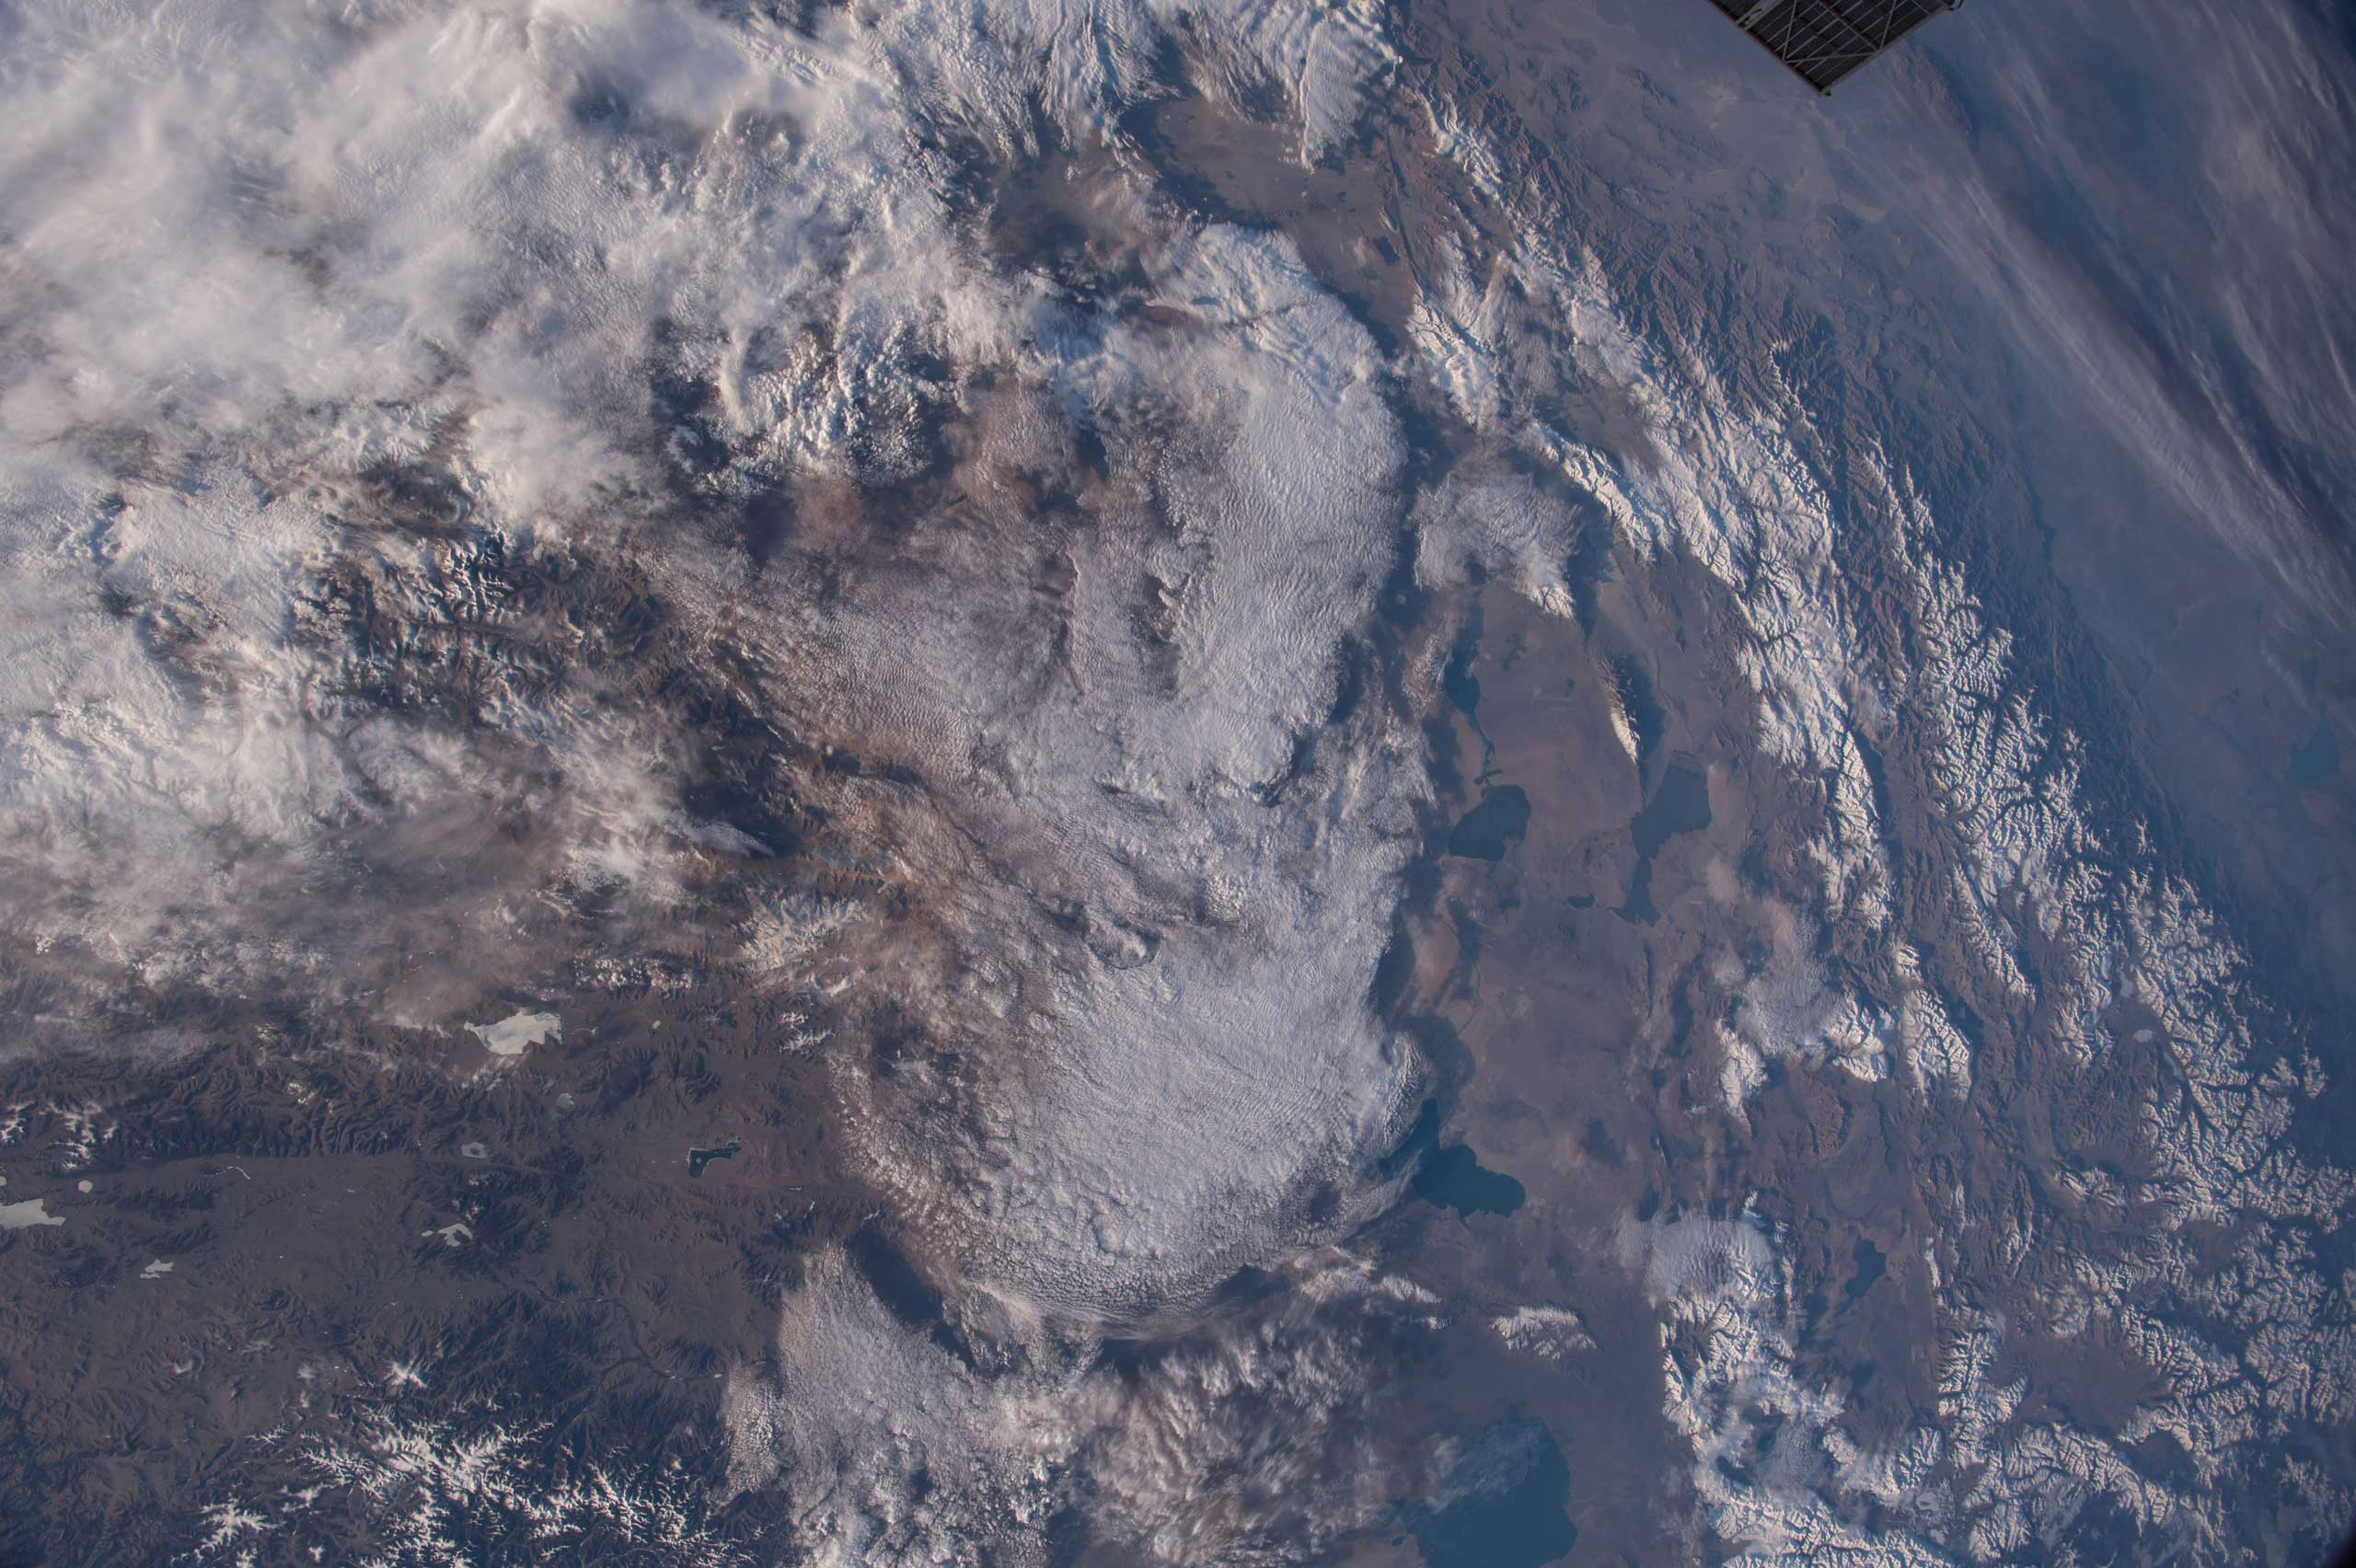 NASA astronaut Terry Virts who is the Commander of Expedition 43 on the International Space Station tweeted this Earth Observation on May 13, 2015, with this comment:  Beautiful part of #Mongolia and #Siberia.